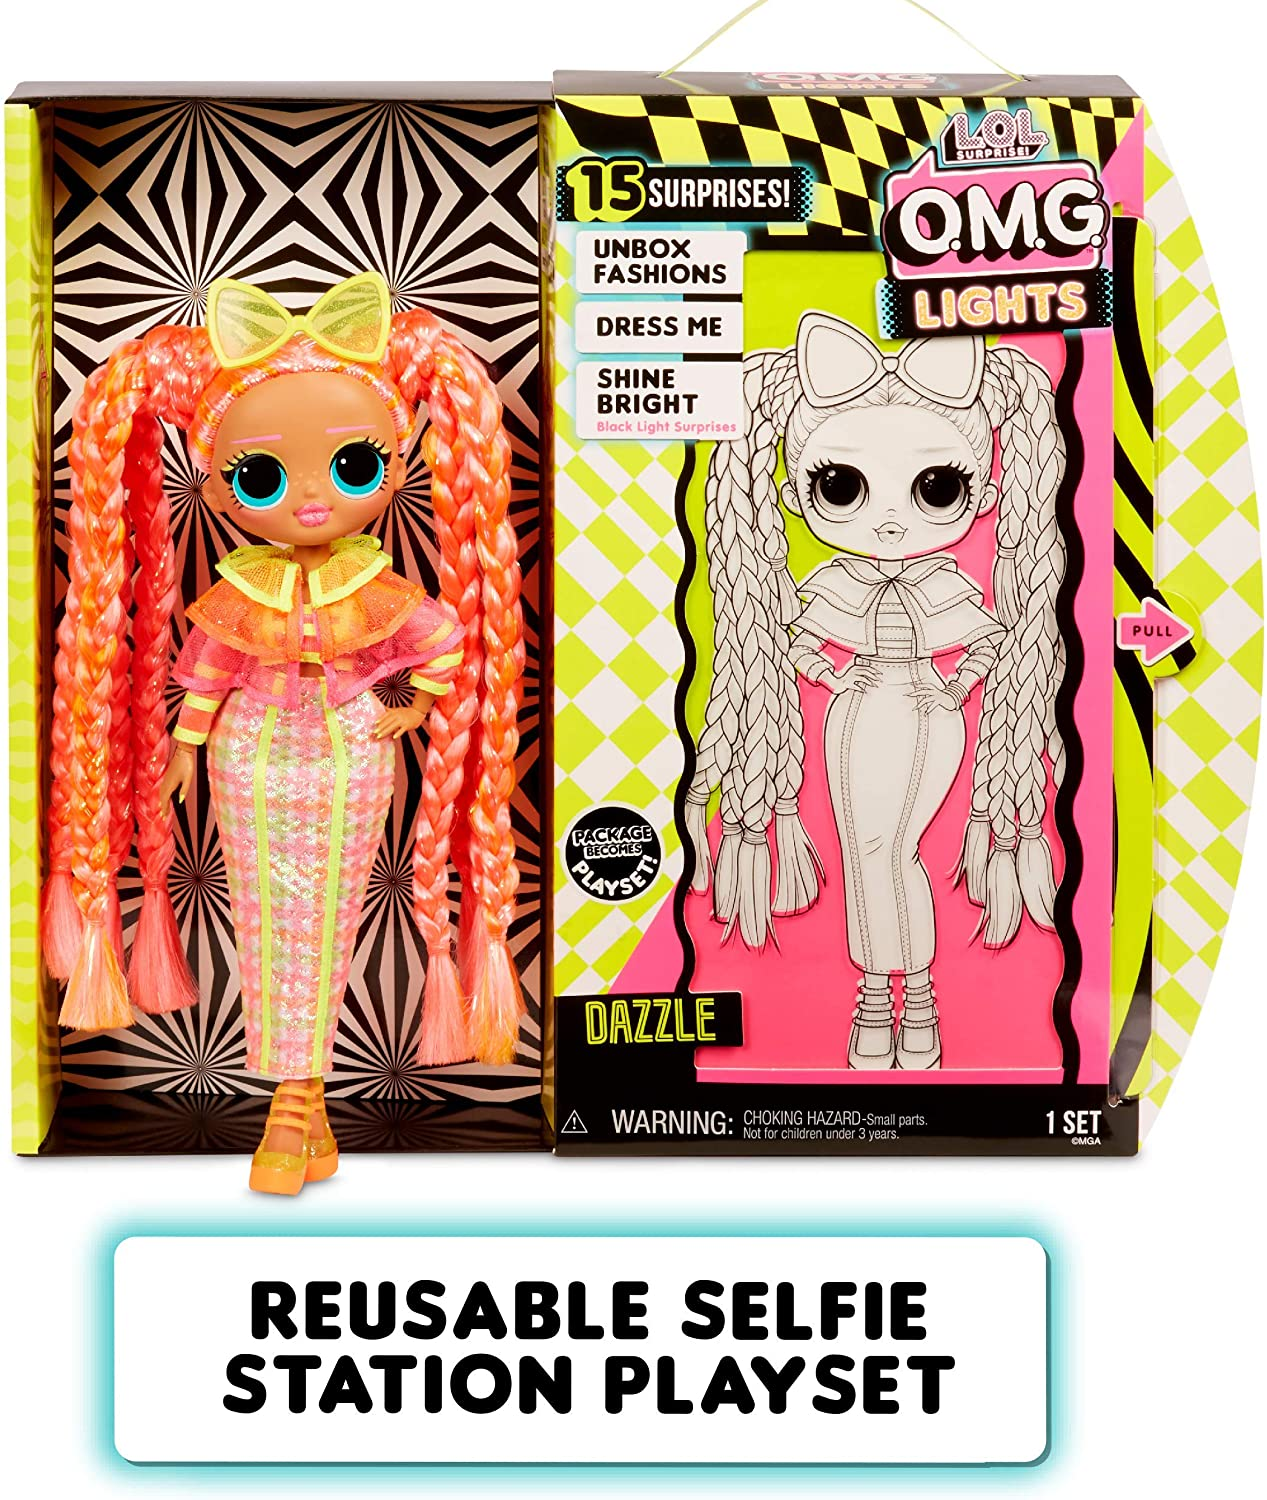 O.M.G MGA Entertainment LOL Surprise Lights Dazzle Fashion Doll with 15 Surprises